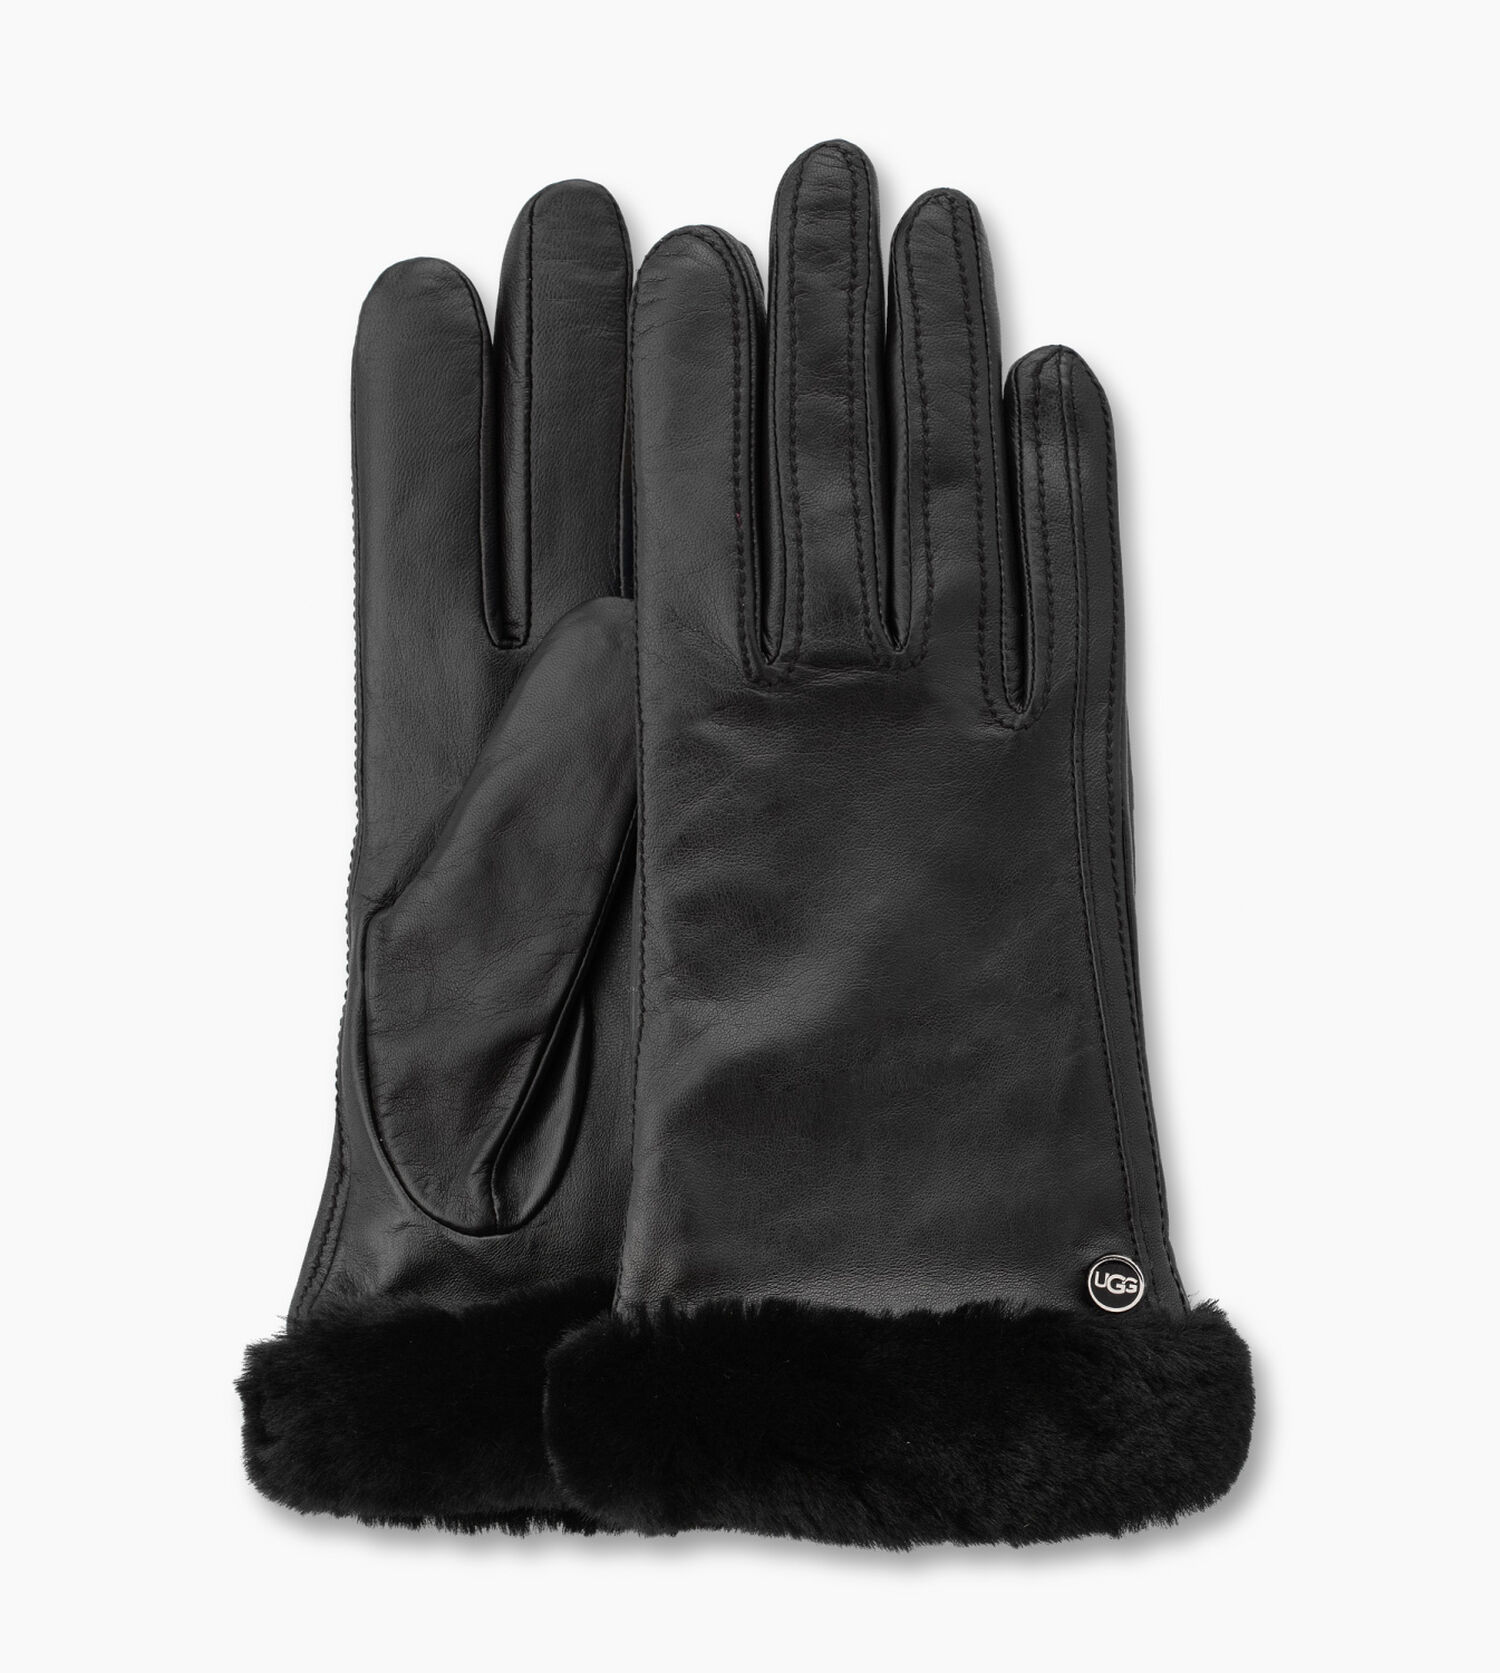 Ladies leather gloves australia - Click To Zoom